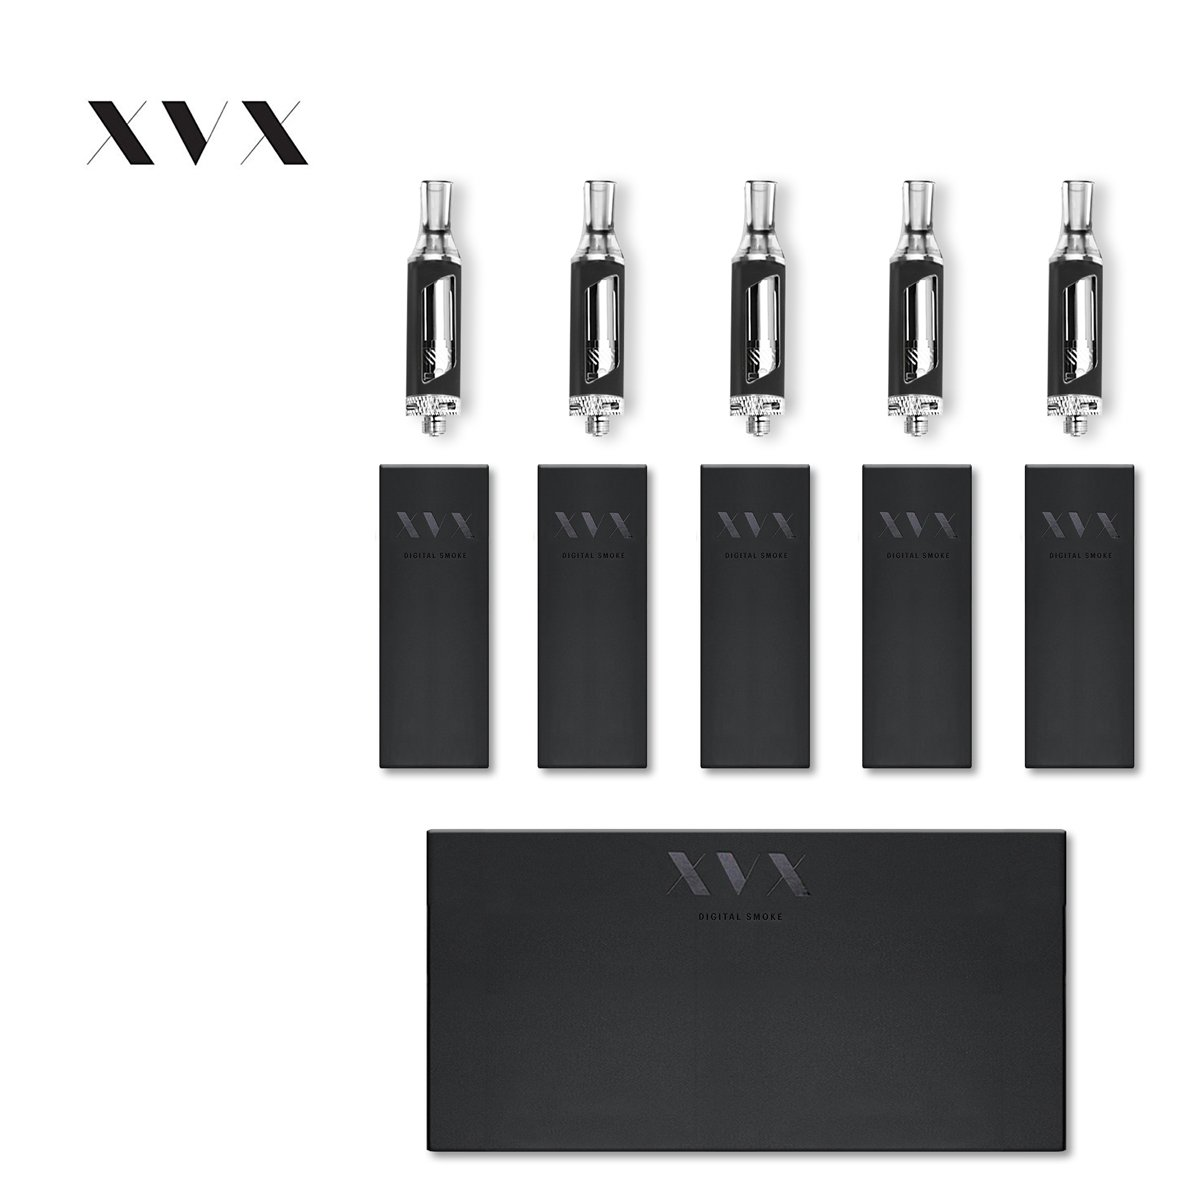 E Cigarettes Refillable Sub Ohm 1 8ml Clearomizer Atomiser Tank XVX Tank  for APEX \ X Edition \ 5 Pack \ 0 5 Ohm Dual Coil \ Electronic Shisha Vape